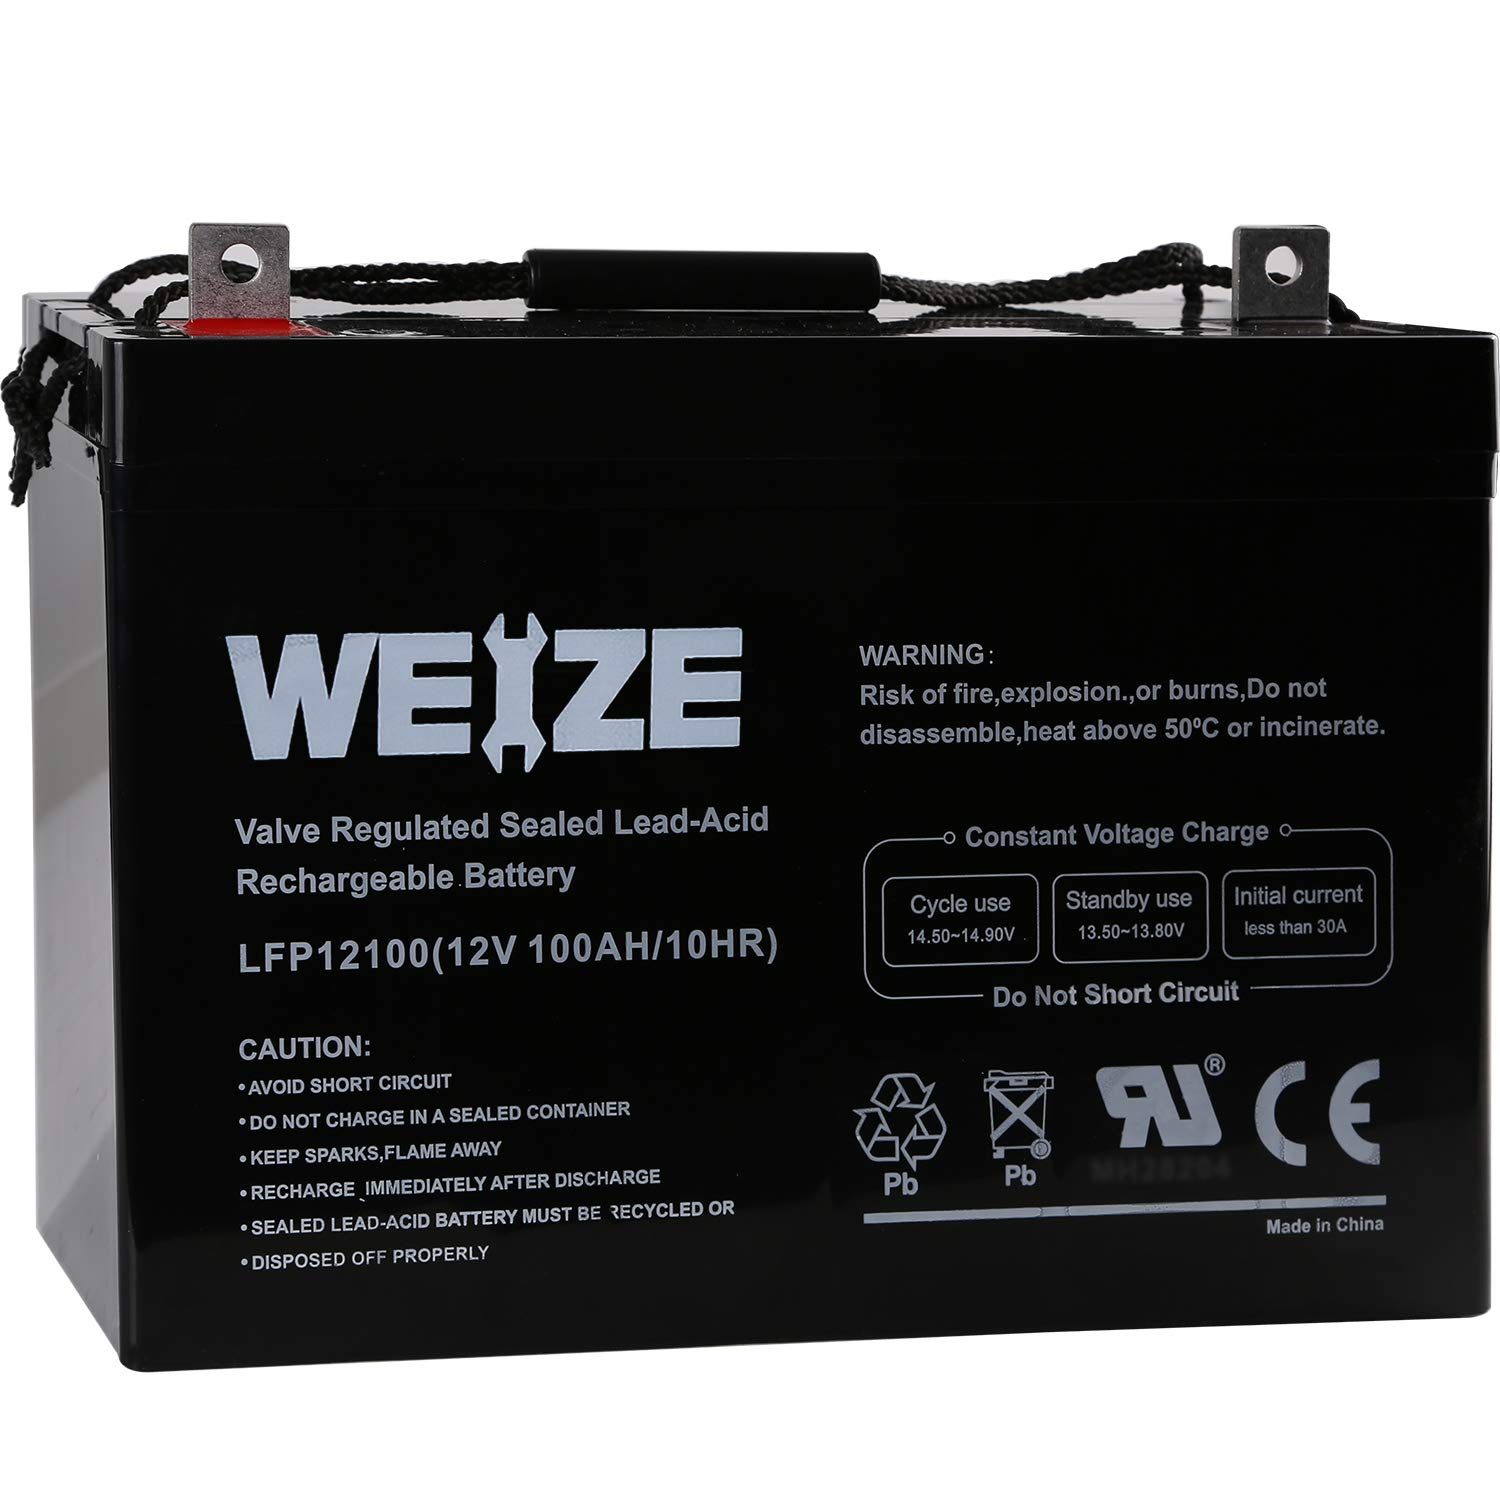 Weize Battery System Camping Trolling